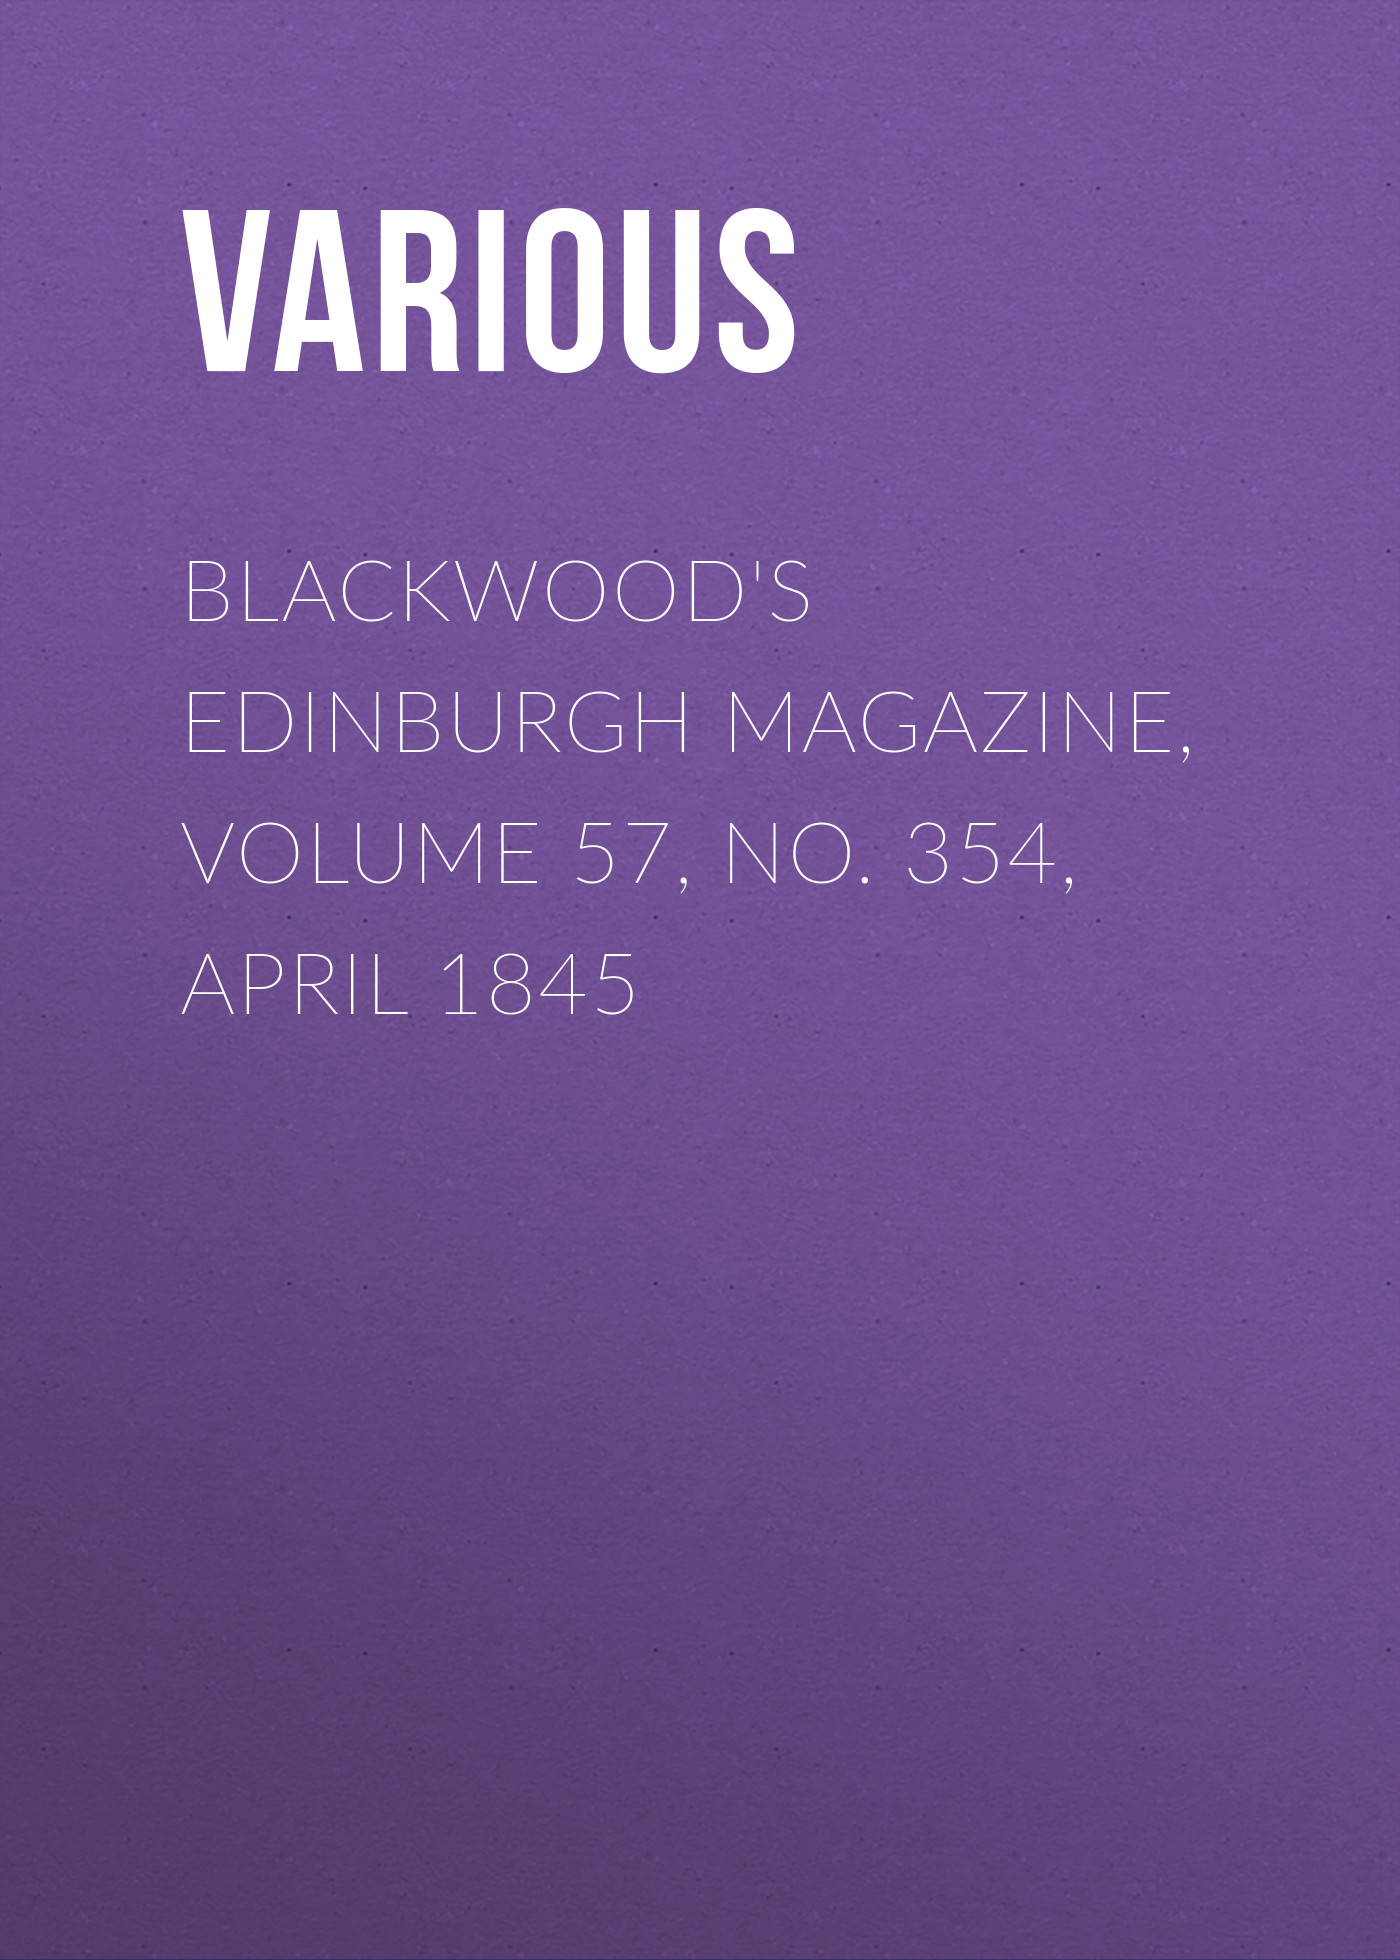 Various Blackwood's Edinburgh Magazine, Volume 57, No. 354, April 1845 various blackwood s edinburgh magazine volume 67 no 411 january 1850